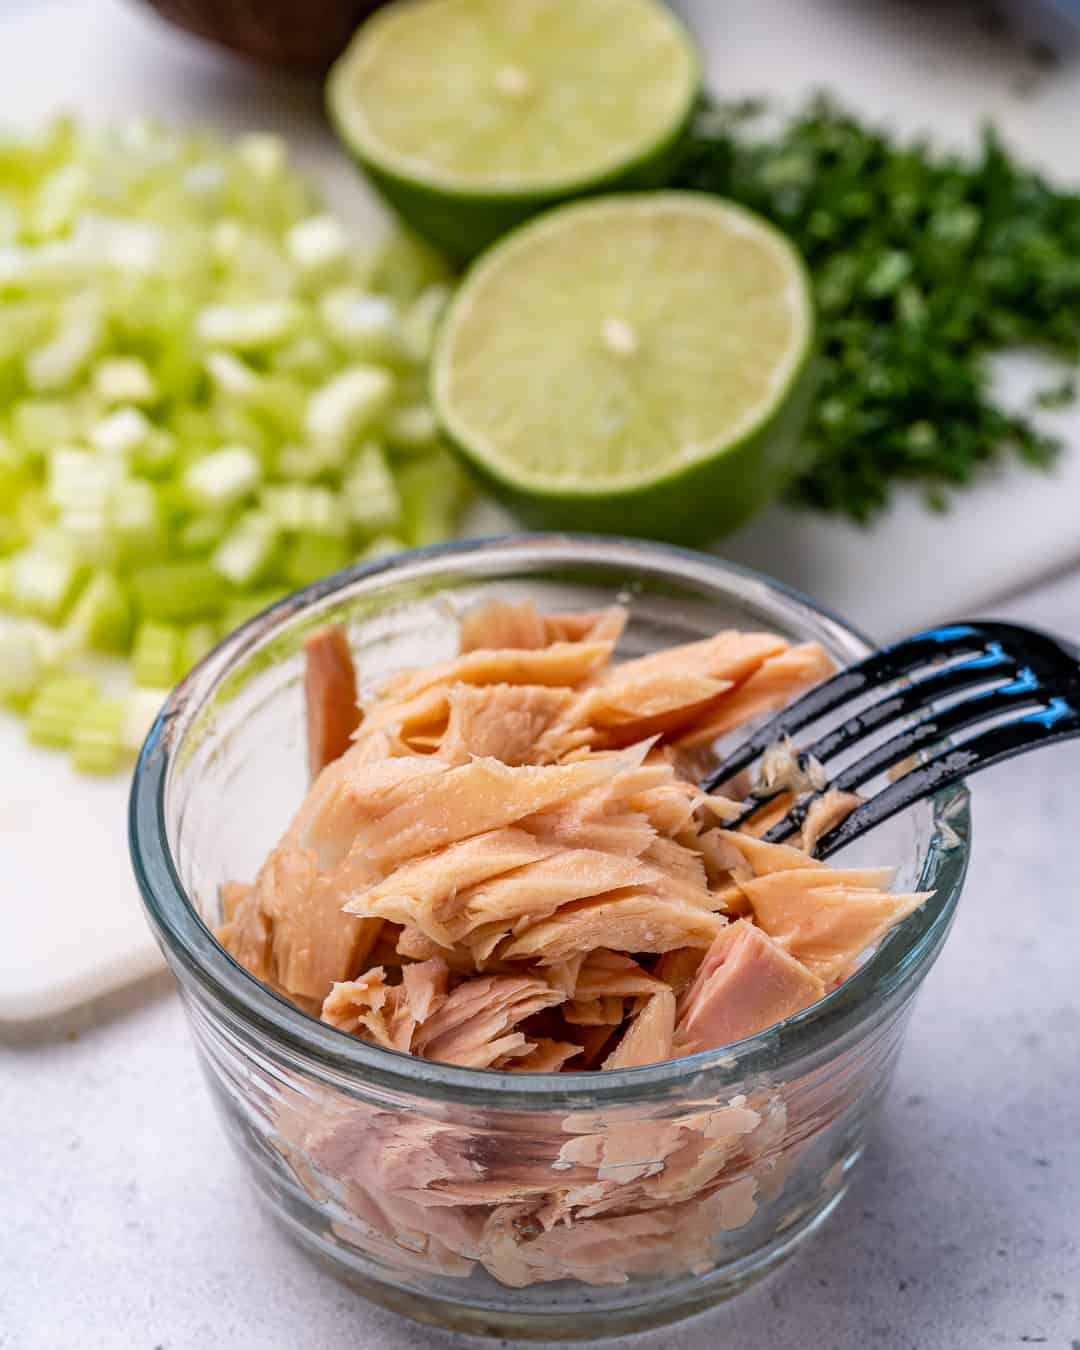 canned tuna in a bowl for the tuna salad